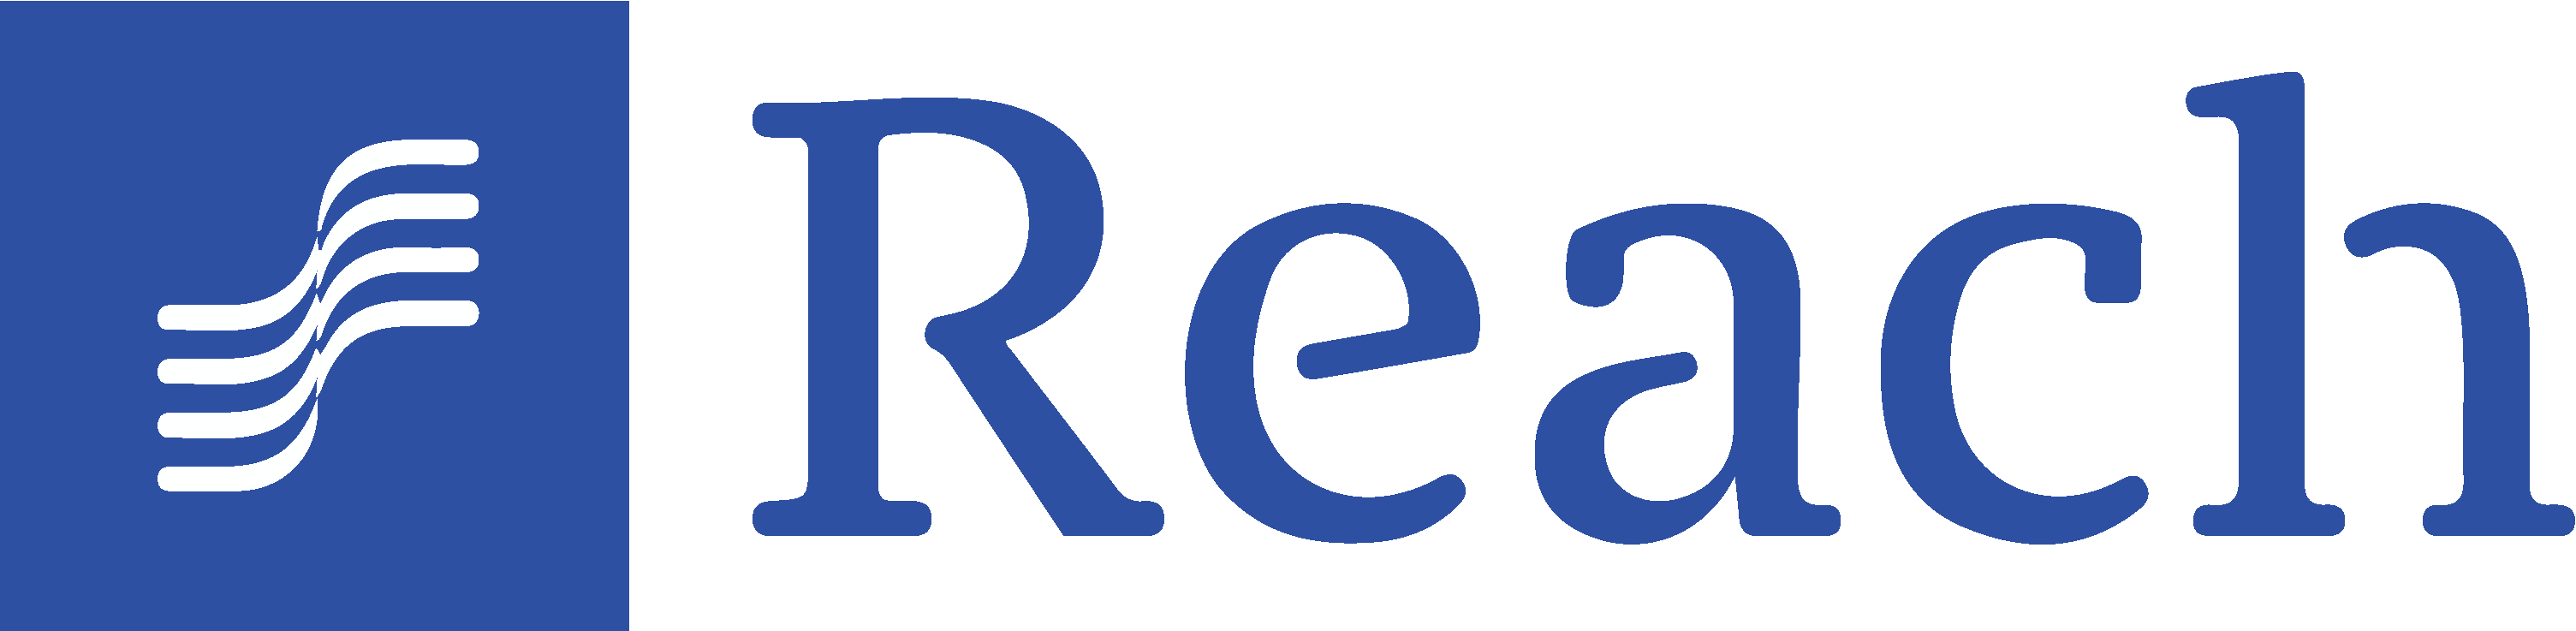 Reach Capital logo